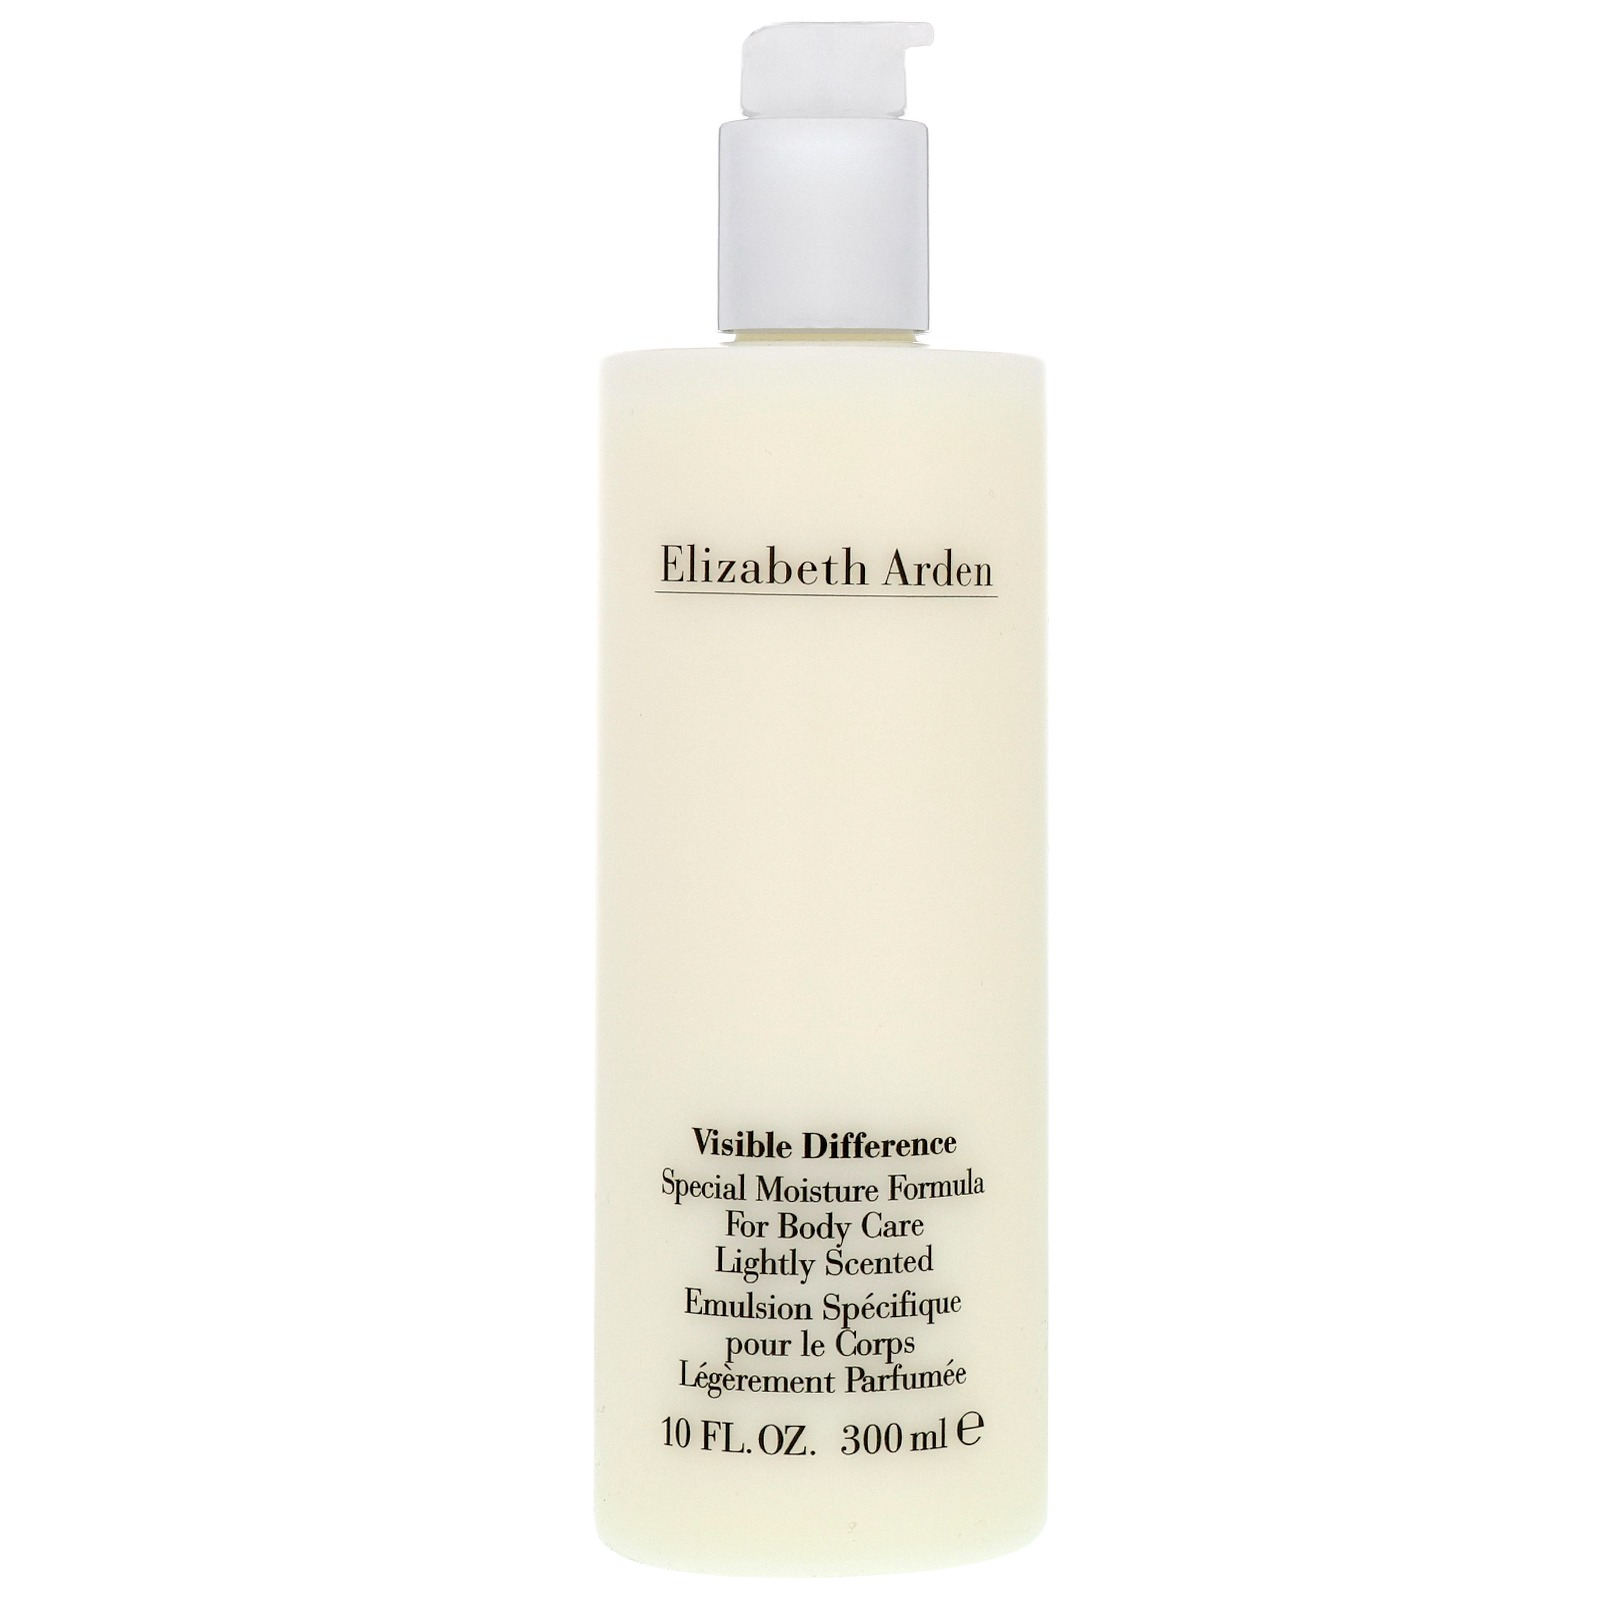 Elizabeth Arden Body Care  Visible Difference Special Moisture Body Formula 300ml / 10 fl.oz.